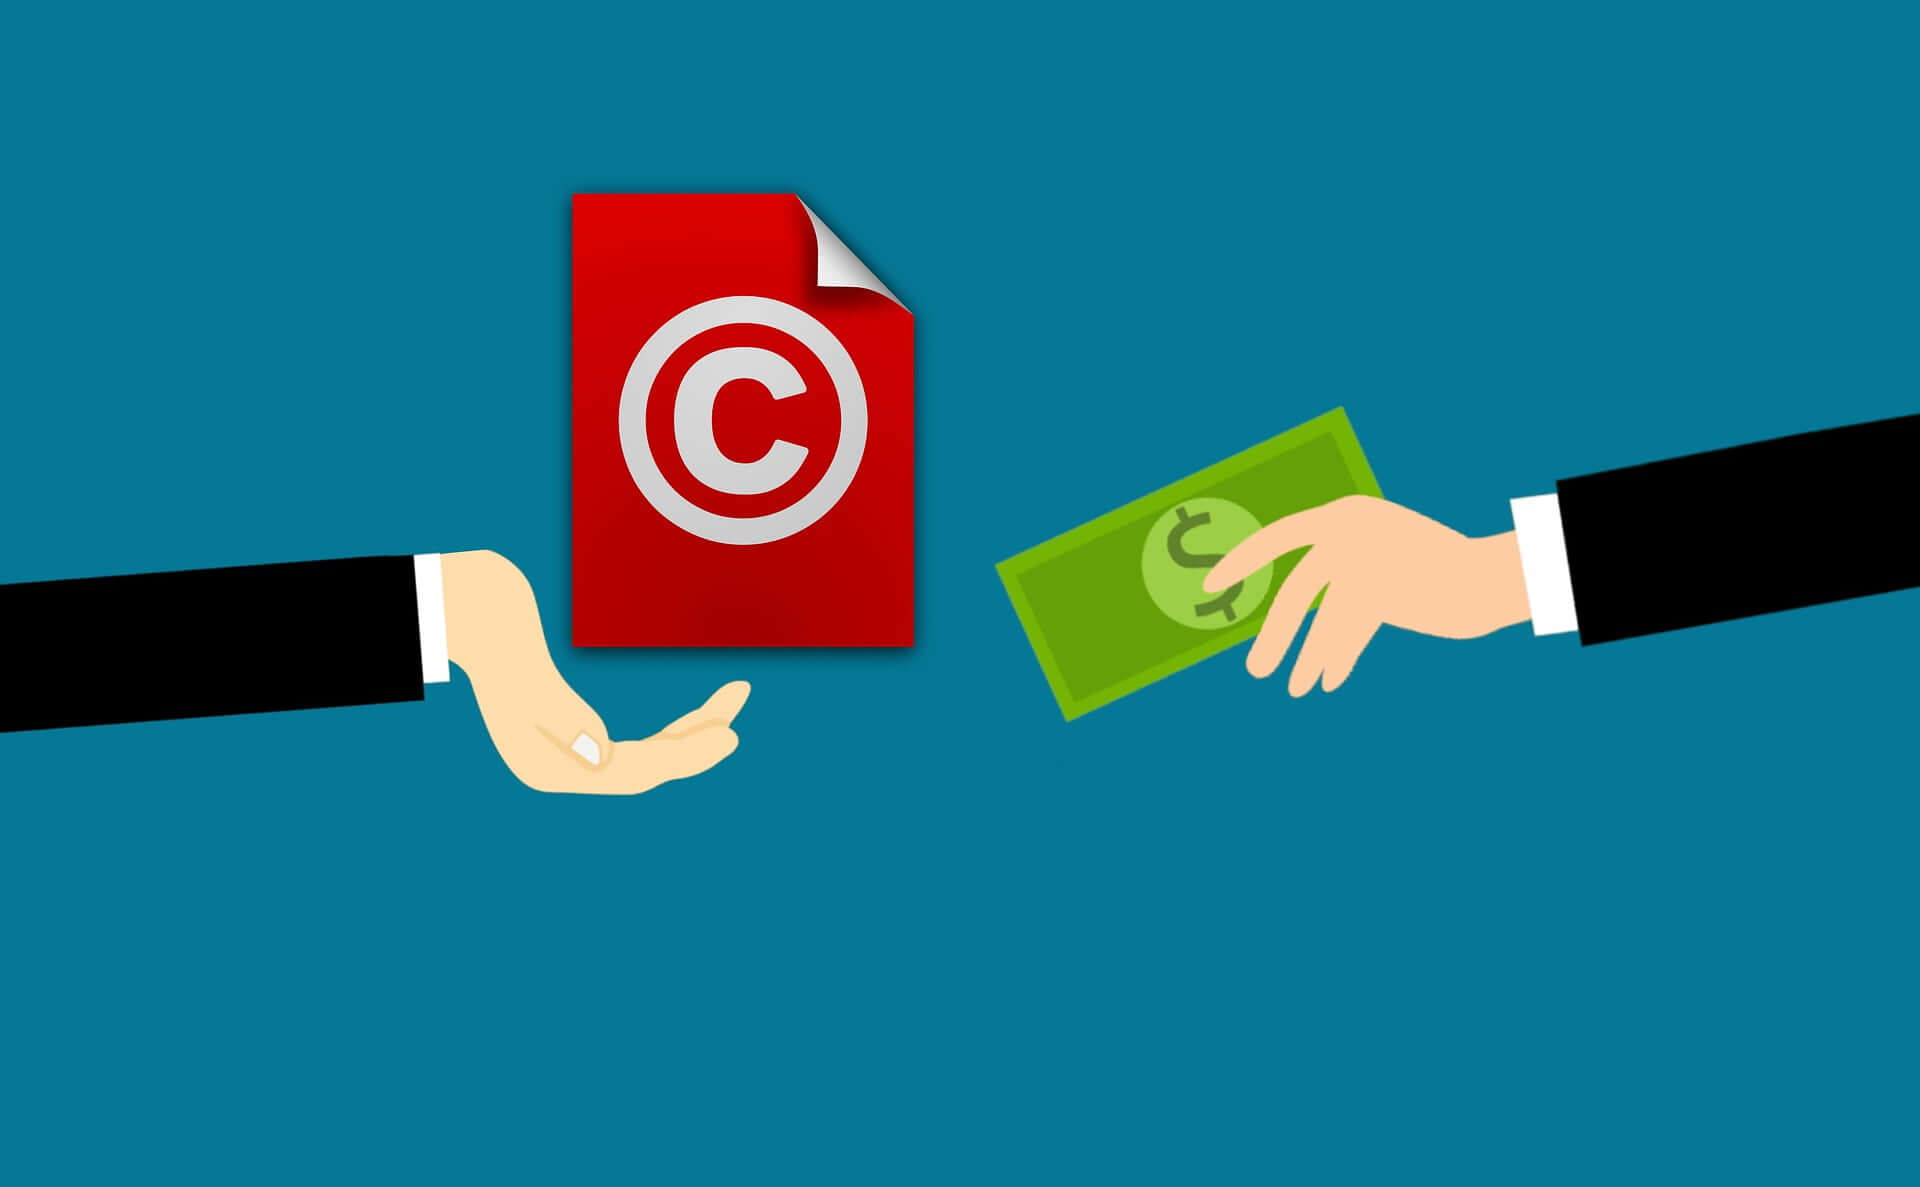 Clipart of a person handing money to someone, to use their copyrighted content